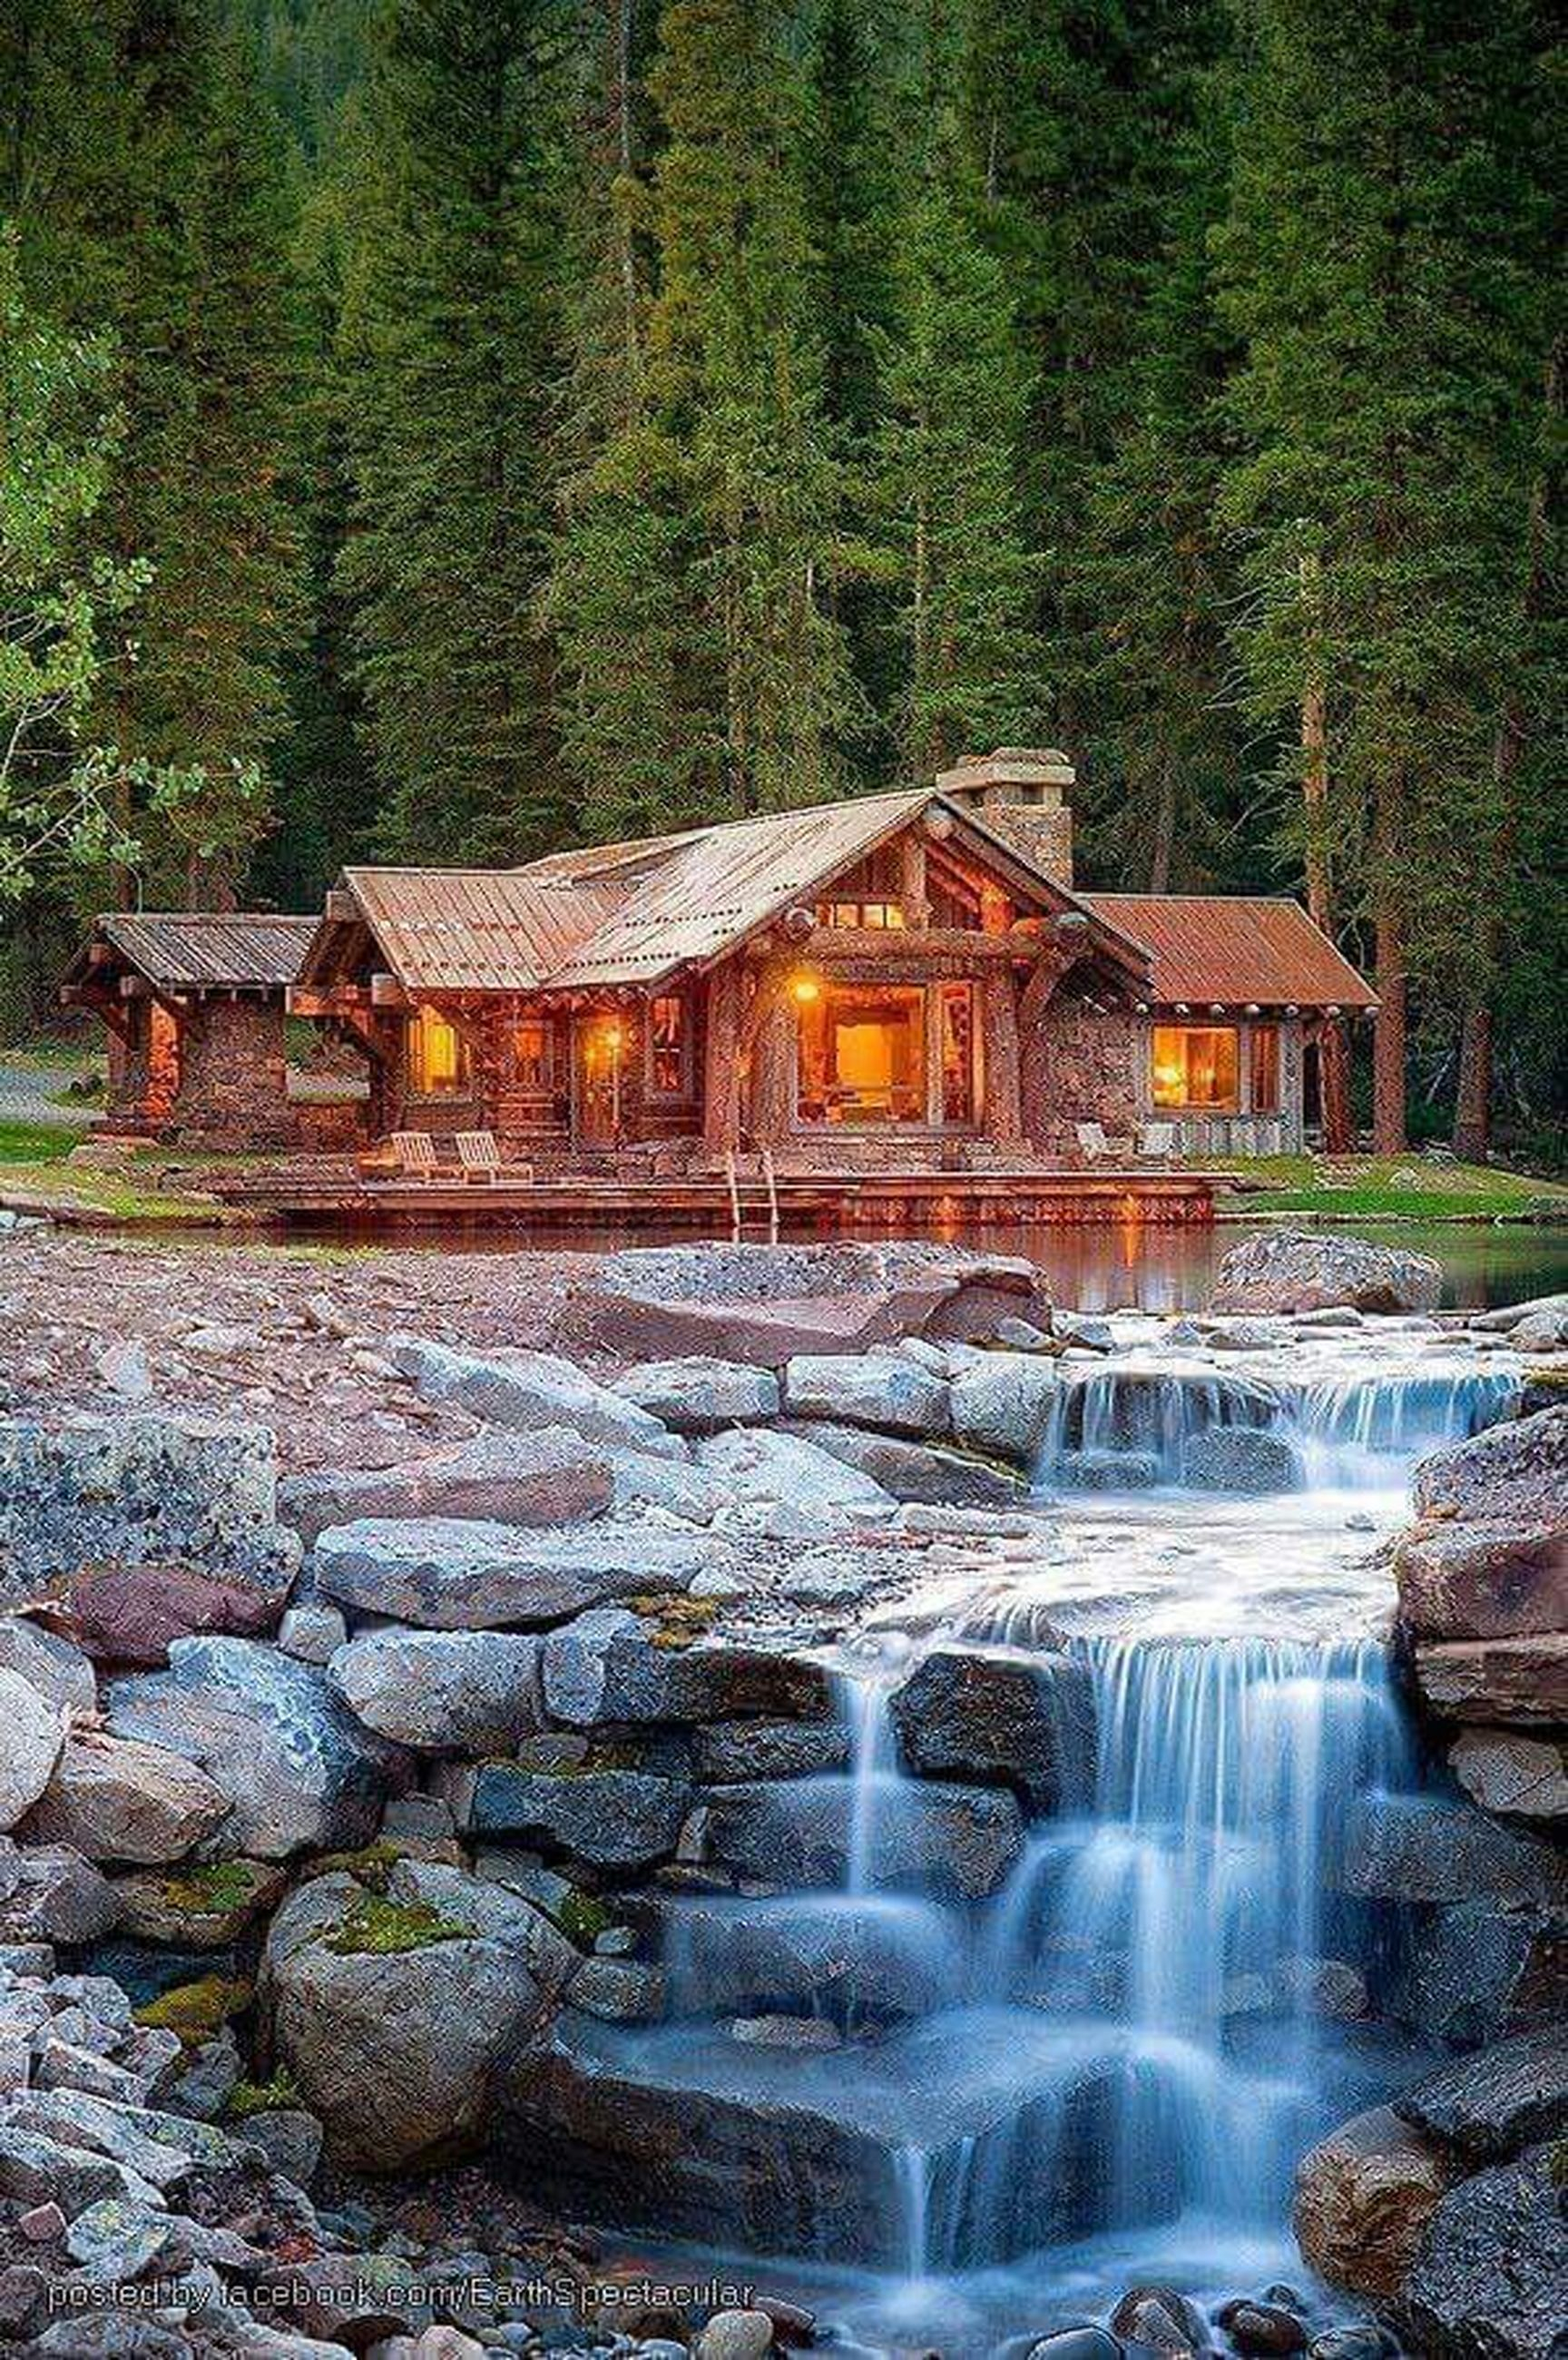 water, tree, built structure, architecture, flowing water, waterfall, building exterior, motion, flowing, long exposure, waterfront, nature, rock - object, forest, river, beauty in nature, day, outdoors, fountain, reflection